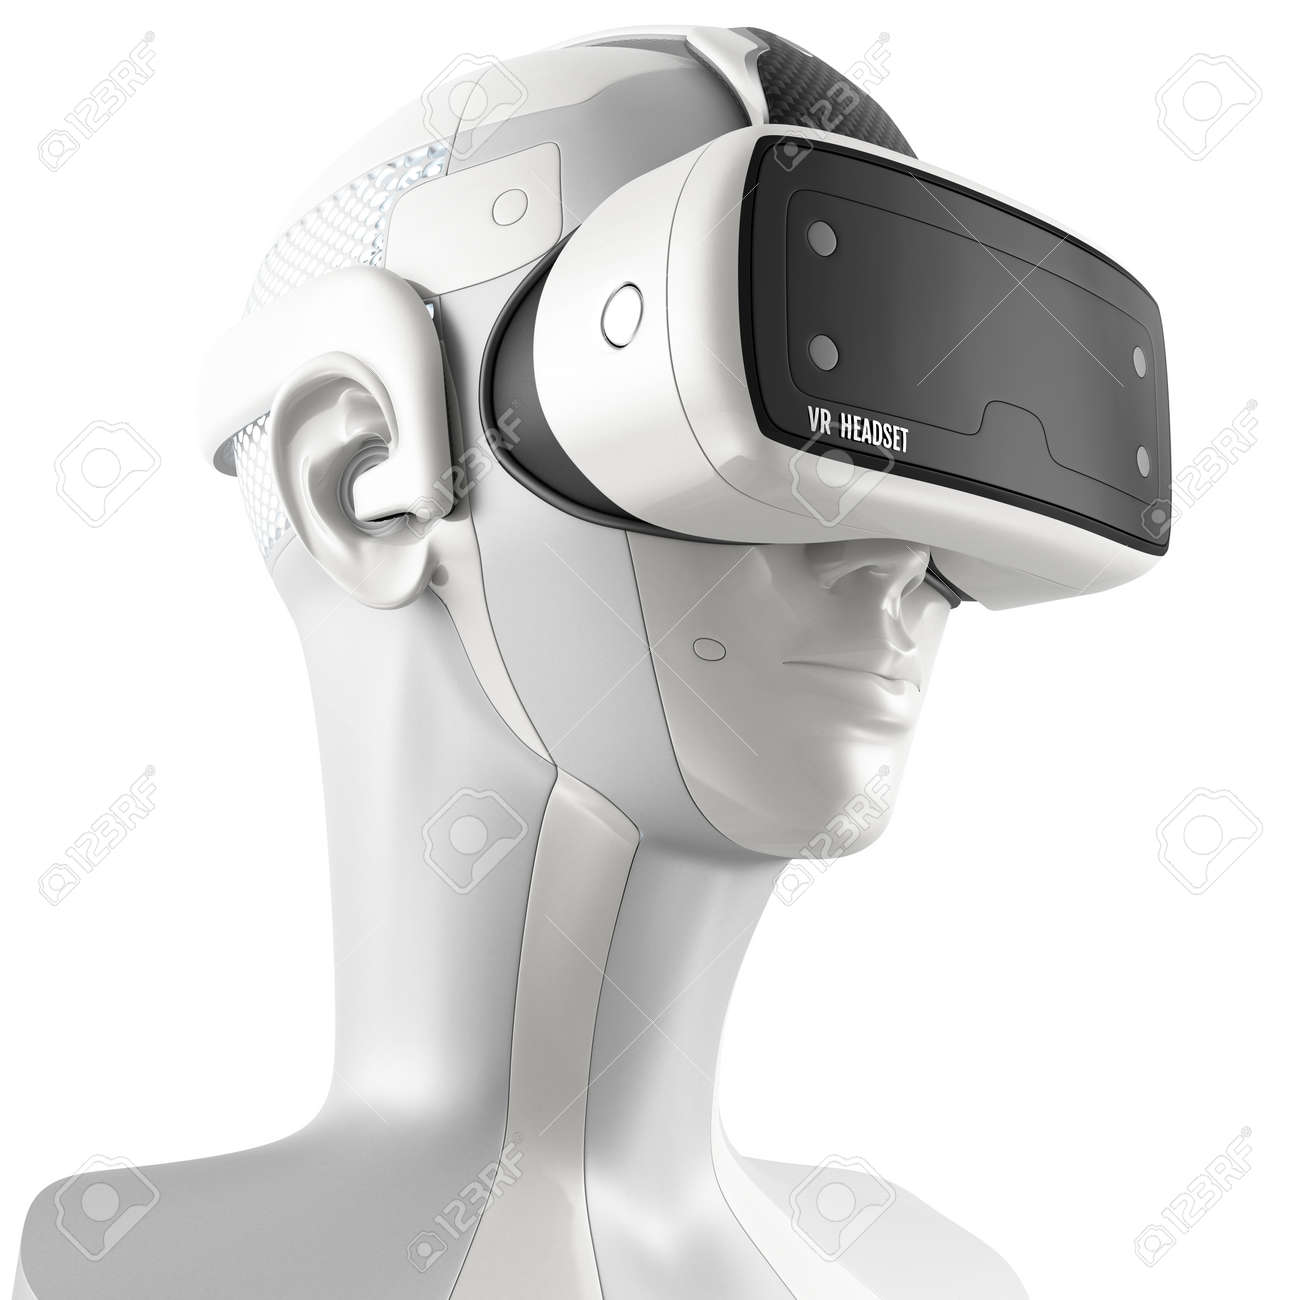 Unusual virtual reality headset with integrated headphones on a white robot. 3d concept isolated on white background. Three-quarter view. - 52231990